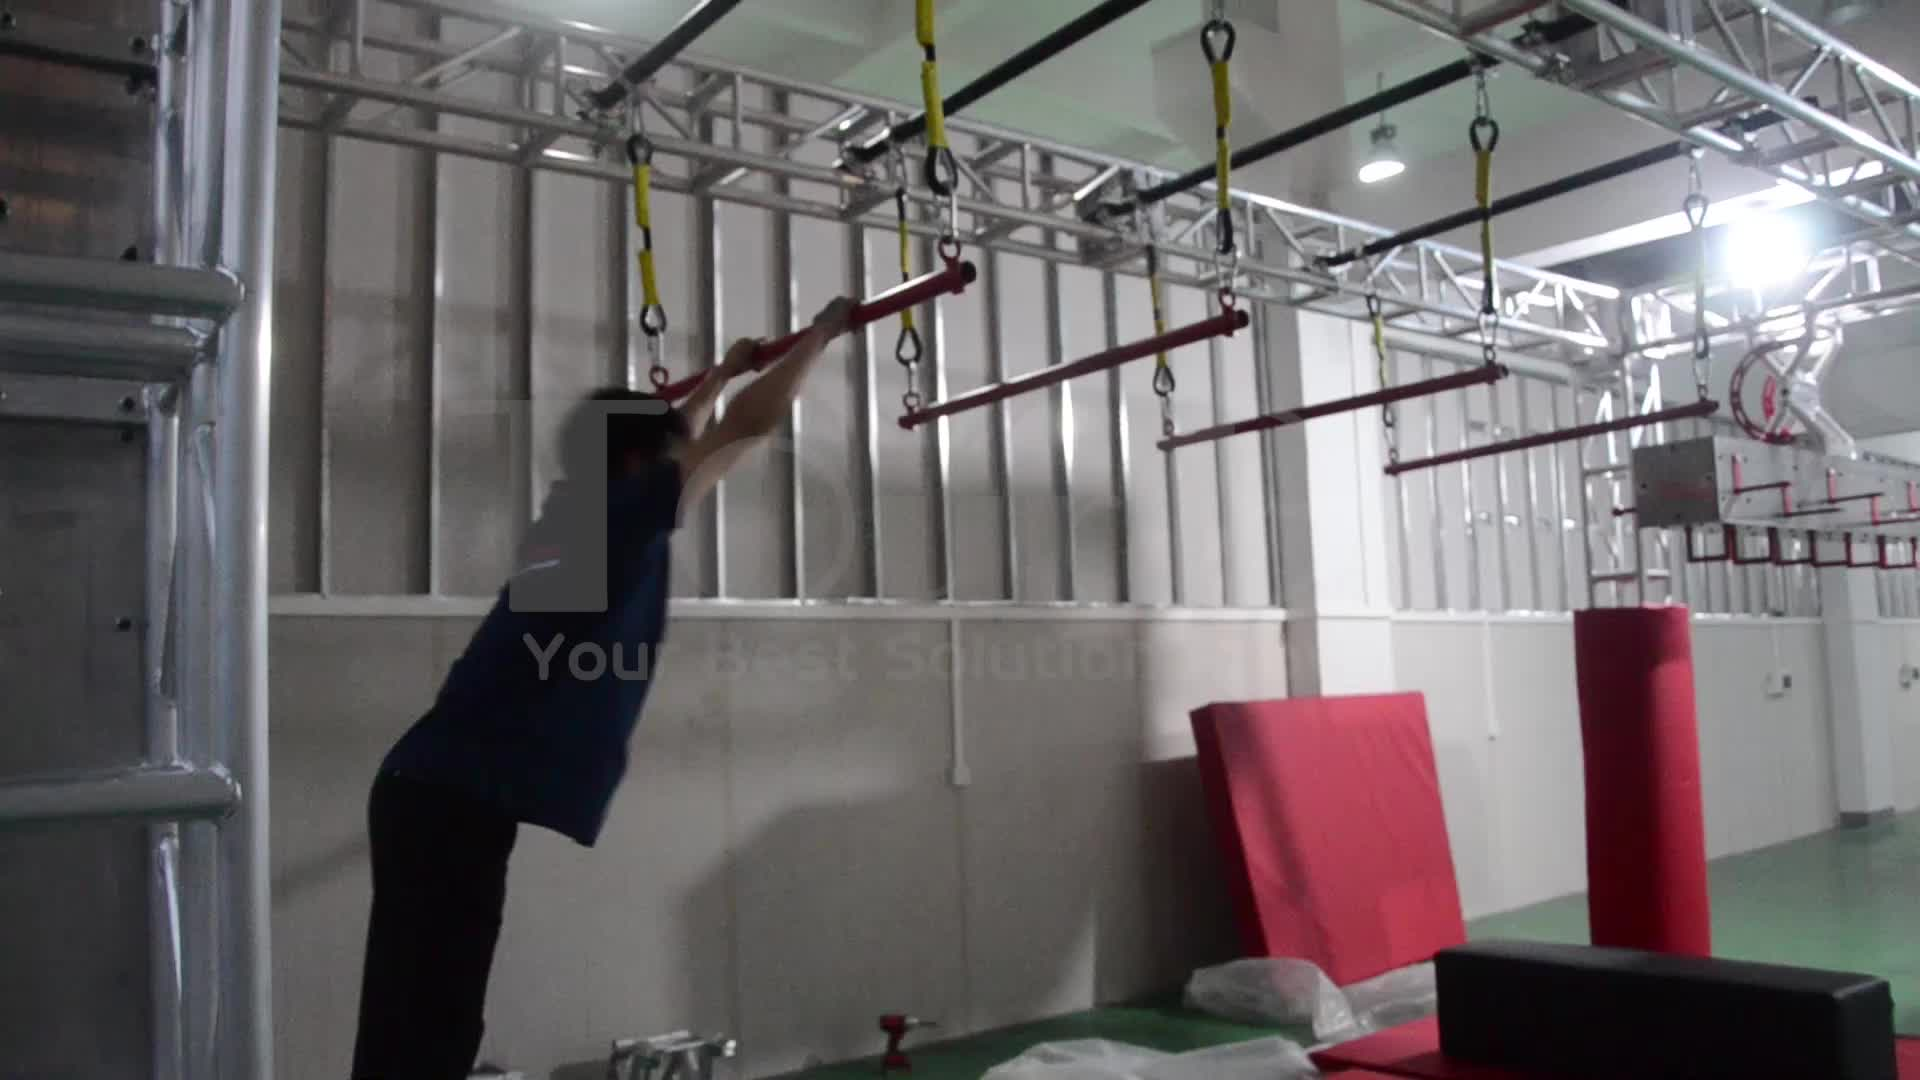 TourGo Ninja Warrior Gym/Ninja Kids Club/Indoor Ninja Warrior Fitness Park